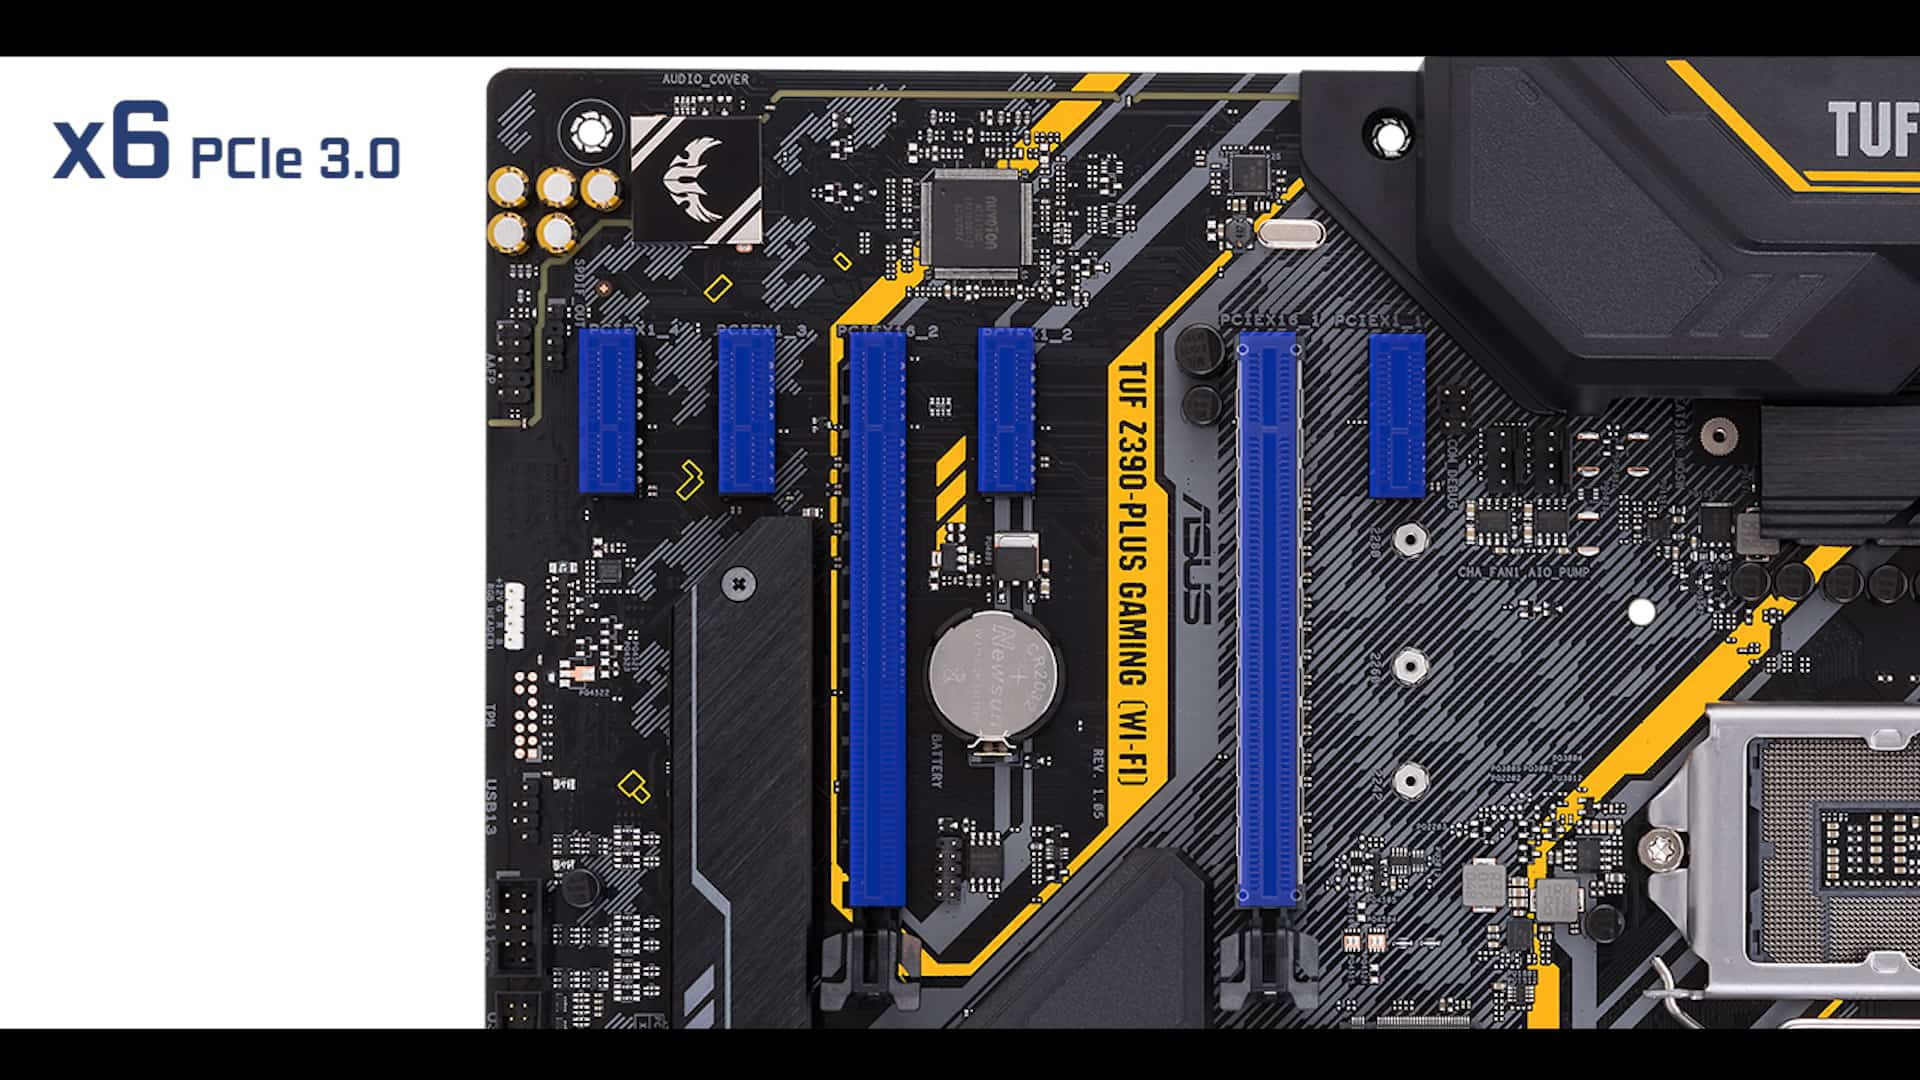 TUF-Z390-PLUS-GAMING